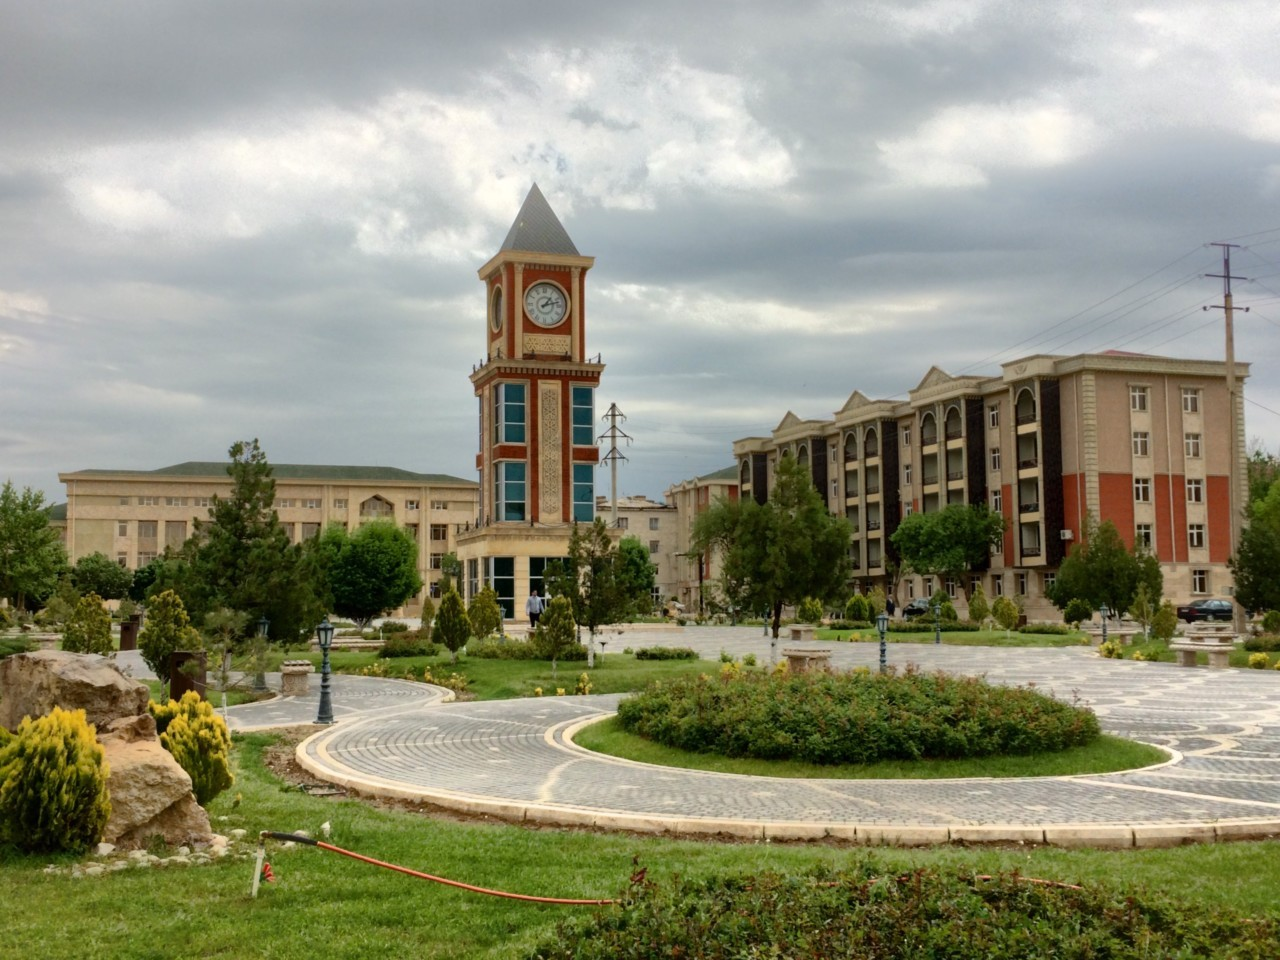 Nakhchivan town square